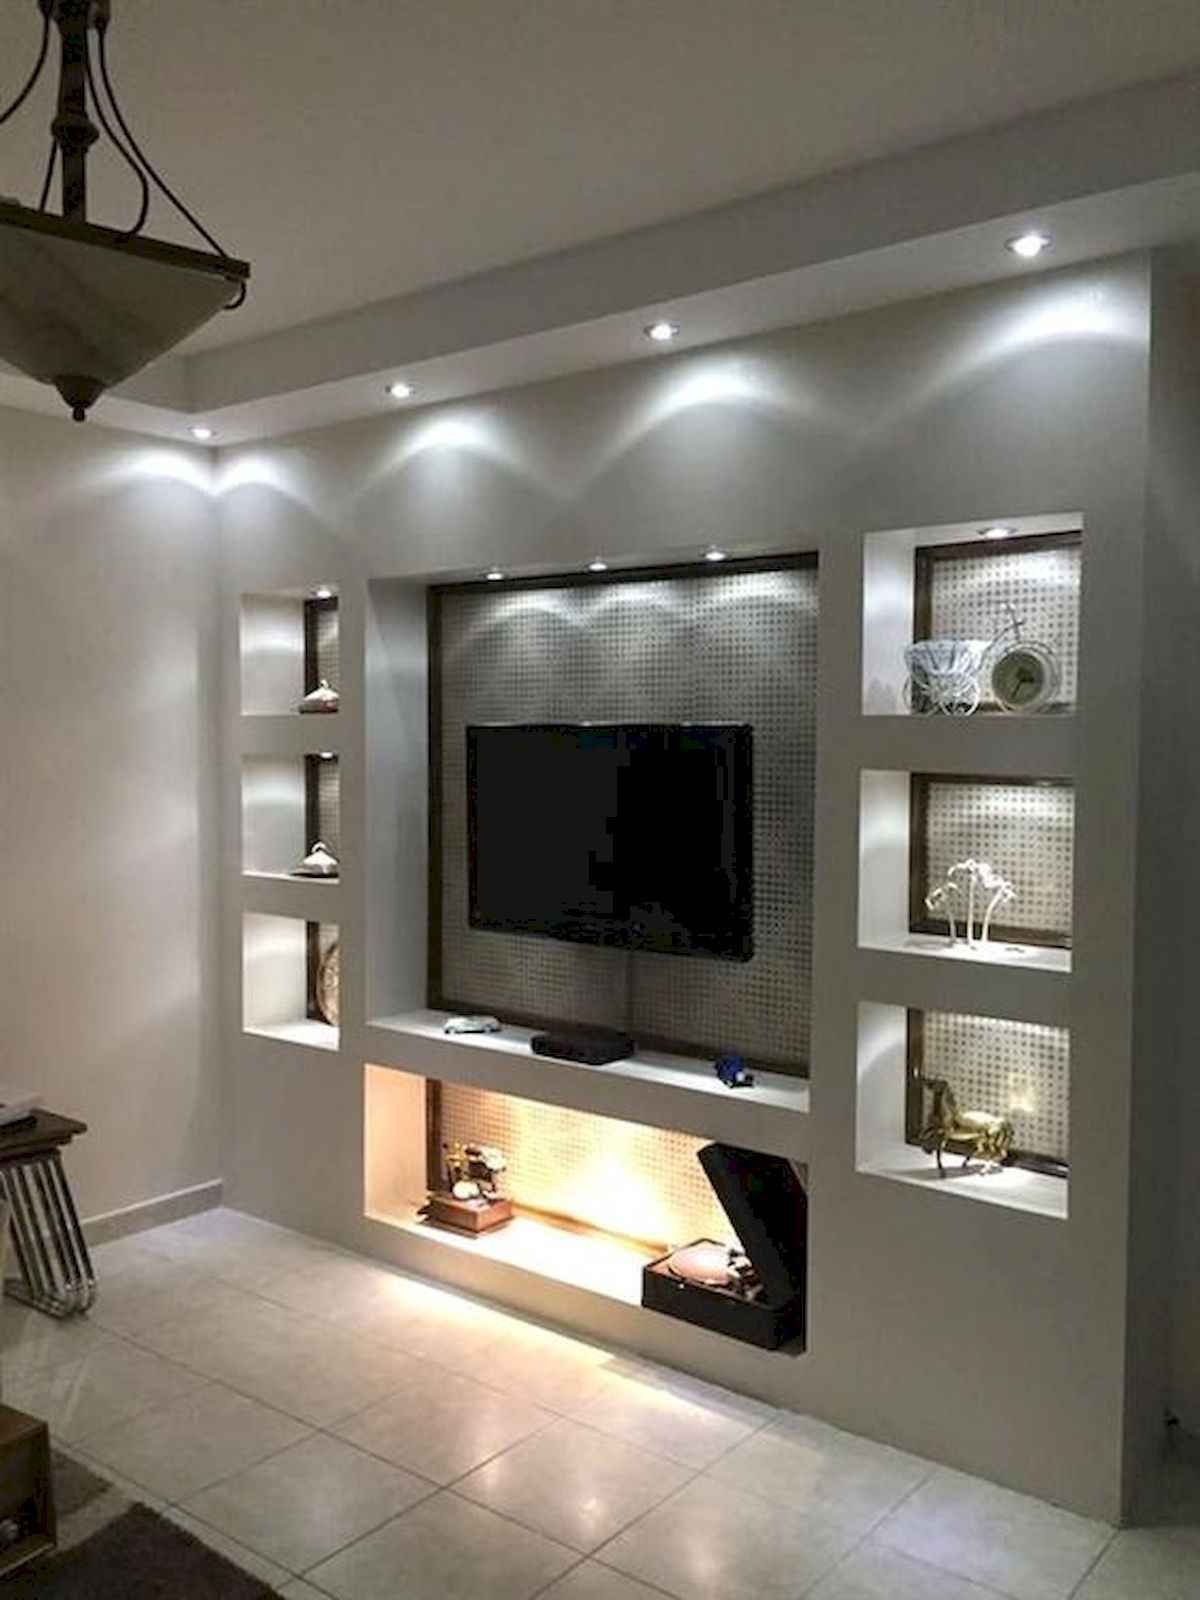 80 Amazing Living Room Tv Wall Decor Ideas And Remodel 60 Modern Living Room Lighting Living Room Design Modern Ceiling Design Modern